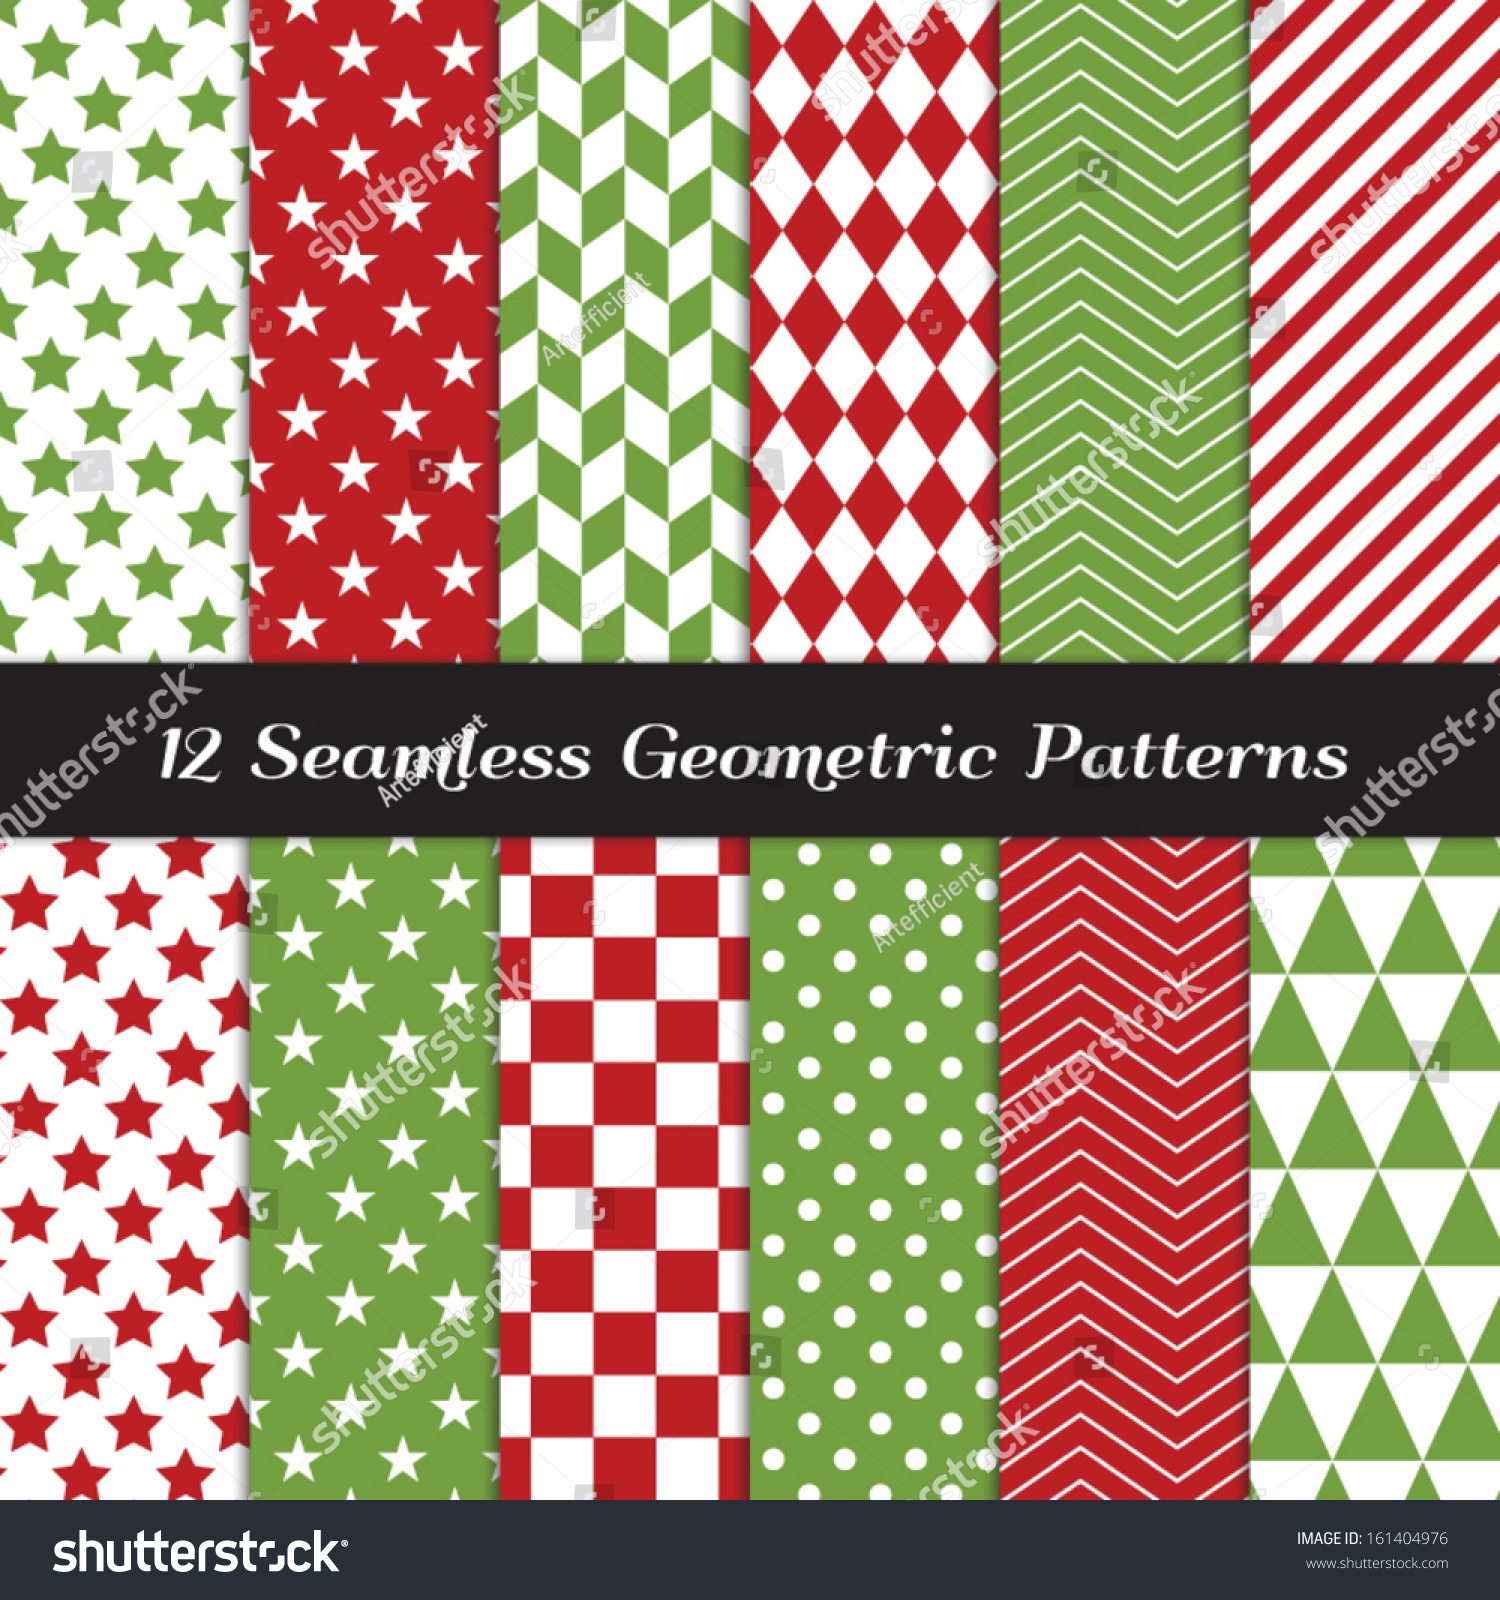 Pics photos merry christmas argyle twitter backgrounds - Christmas Red And Green Geometric Seamless Patterns Backgrounds In Diamond Chevron Polka Dot